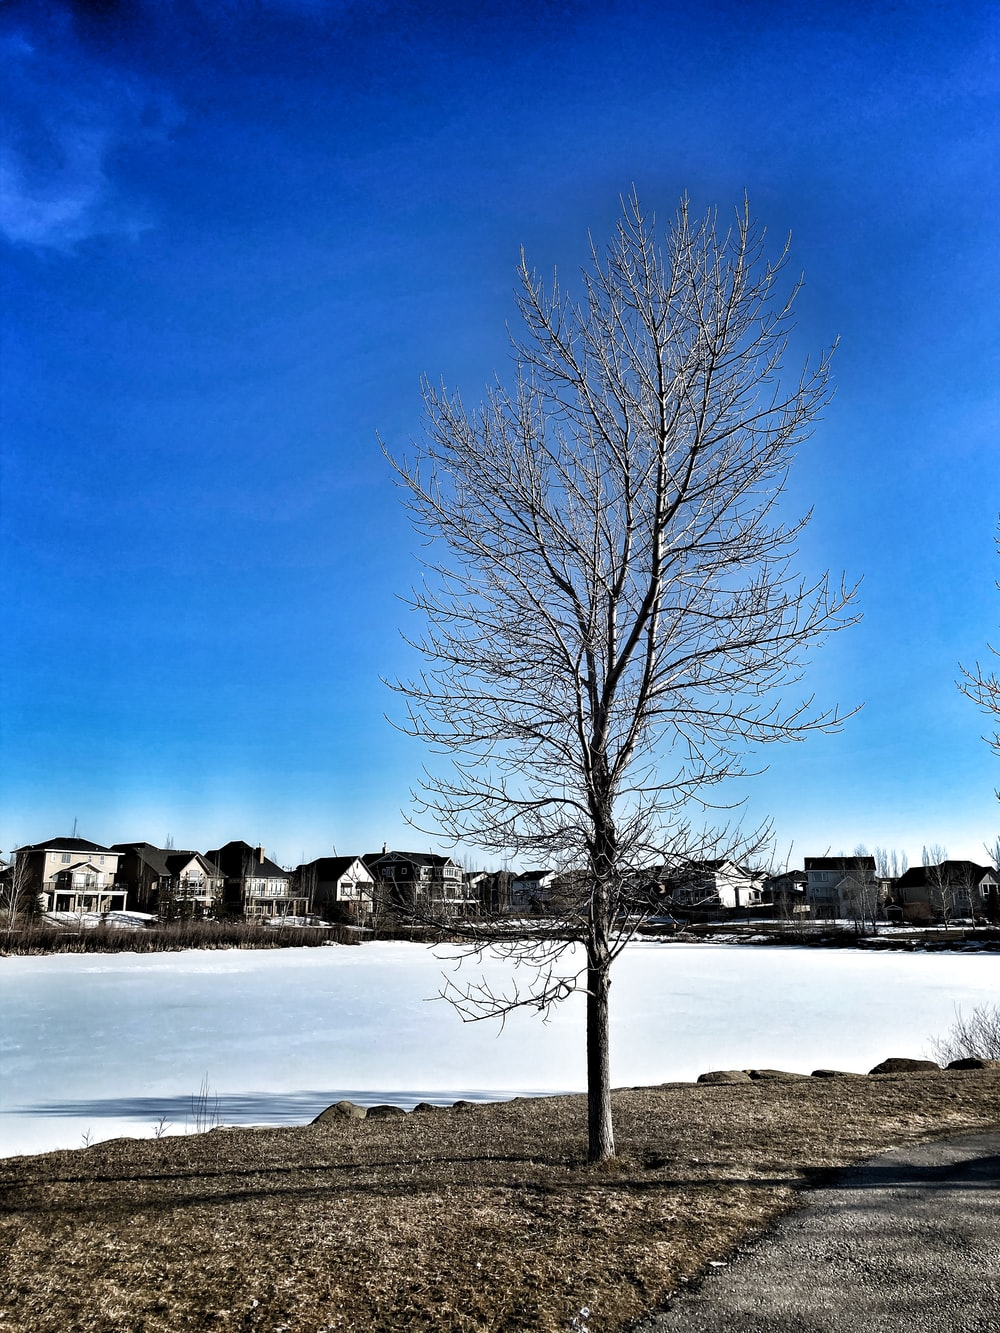 leafless tree on snow covered ground during daytime